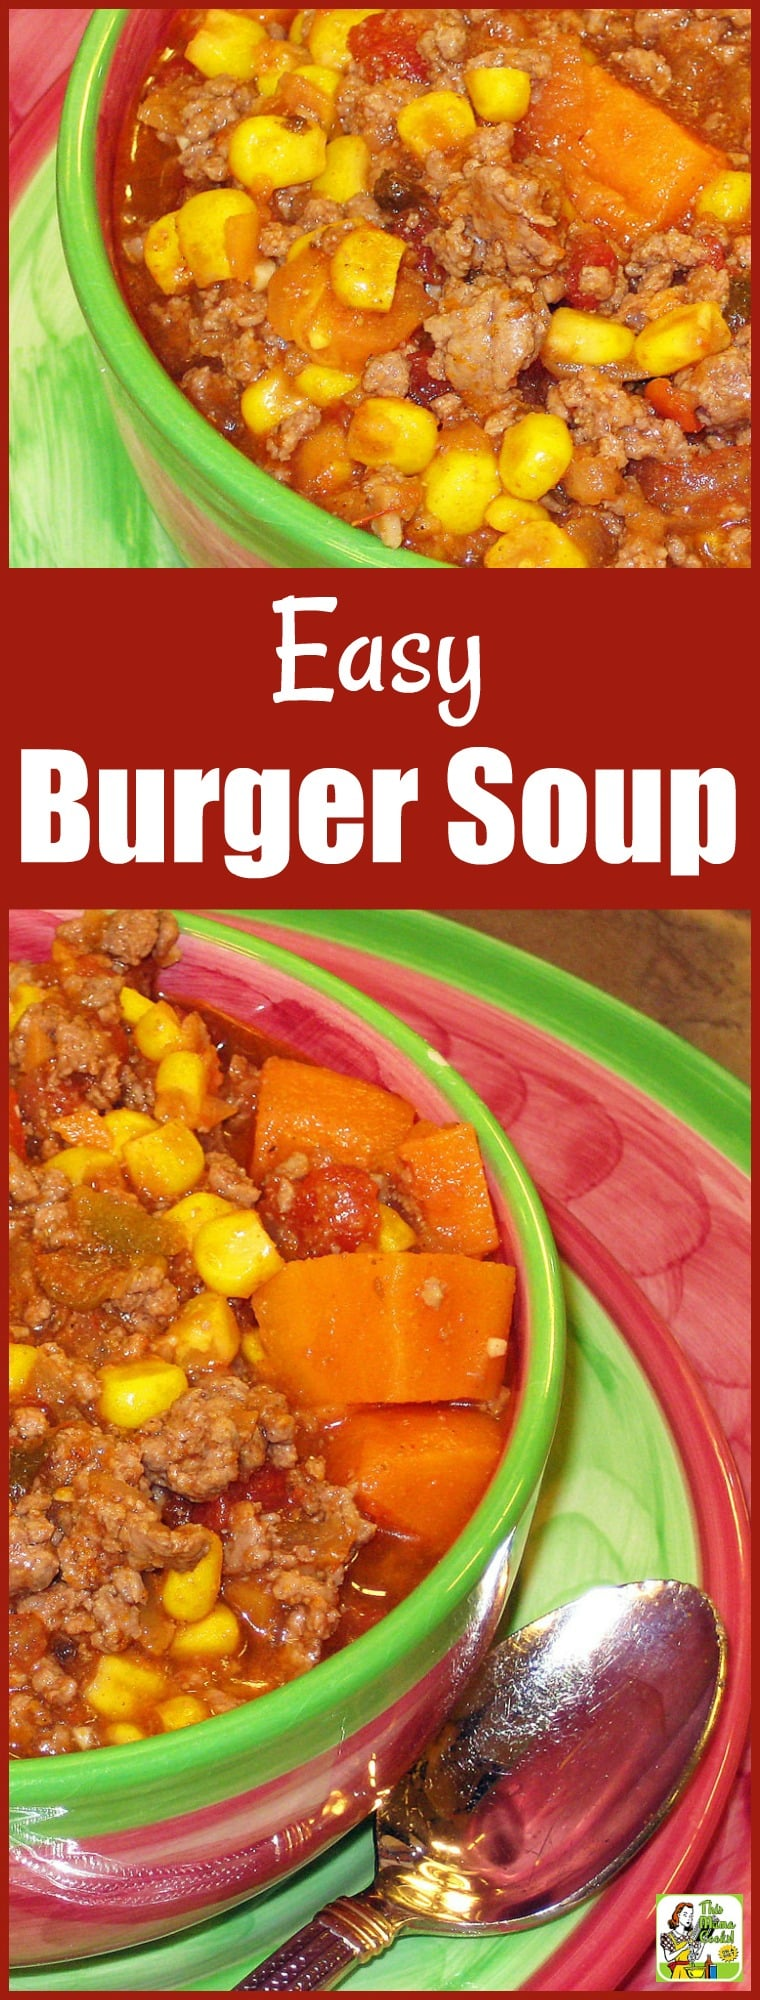 This Easy Burger Soup is perfect for those dreary cold days when you don't have much time to make dinner. Double the recipe and freeze half for another night. Or double and keep warm in a slow cooker for entertaining. #soup #recipes #easy #recipeoftheday #glutenfree #easyrecipe #easyrecipes #glutenfreerecipes #dinner #easydinner #dinnerrecipes #dinnerideas